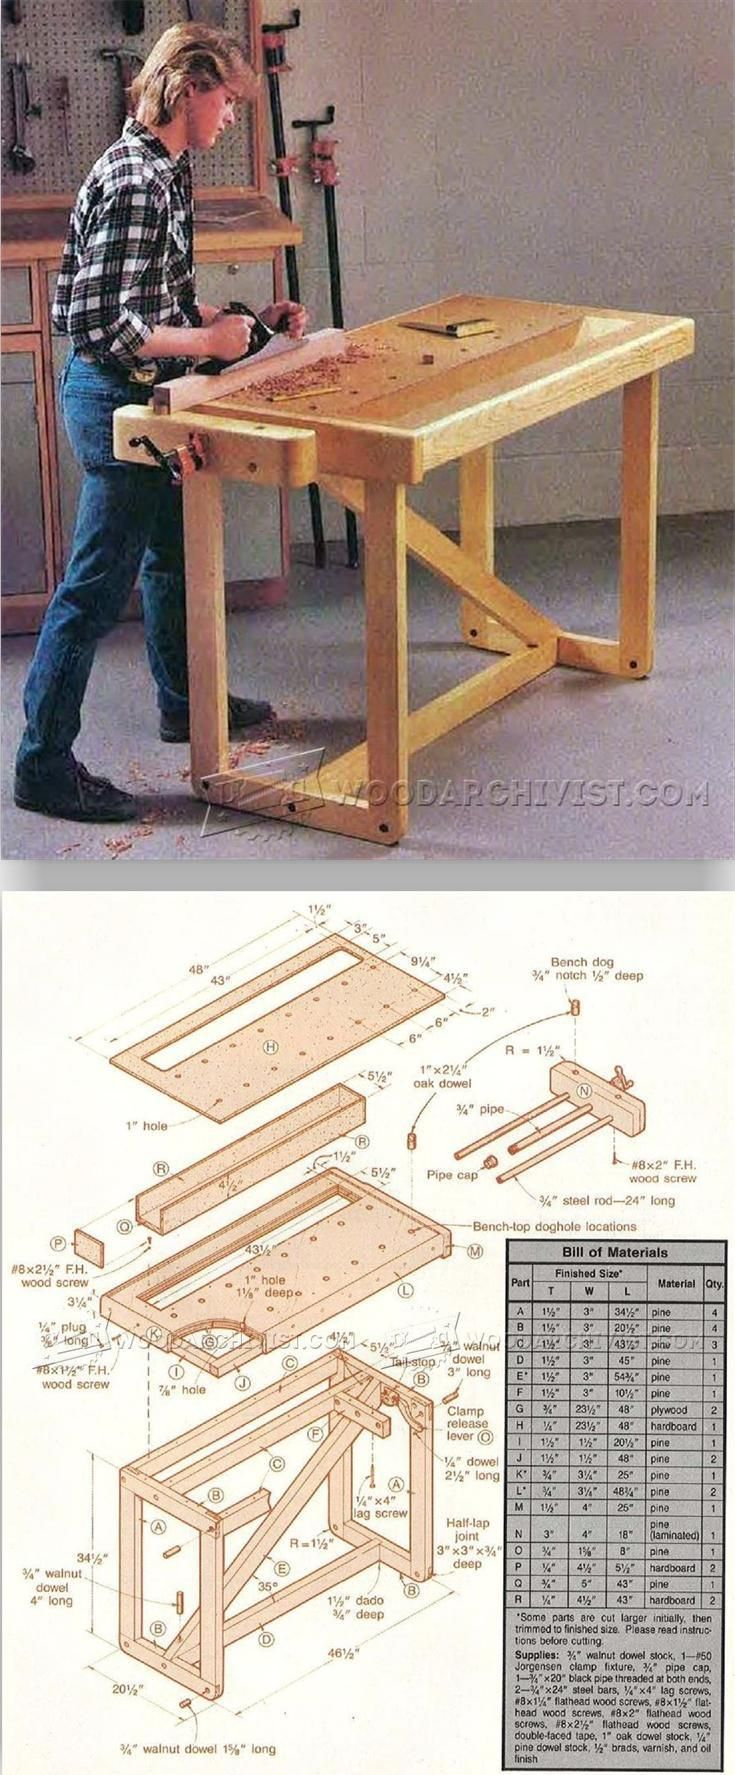 Plans One And Weekend Workshop Workbench Solutions PlansTips D2WH9EI